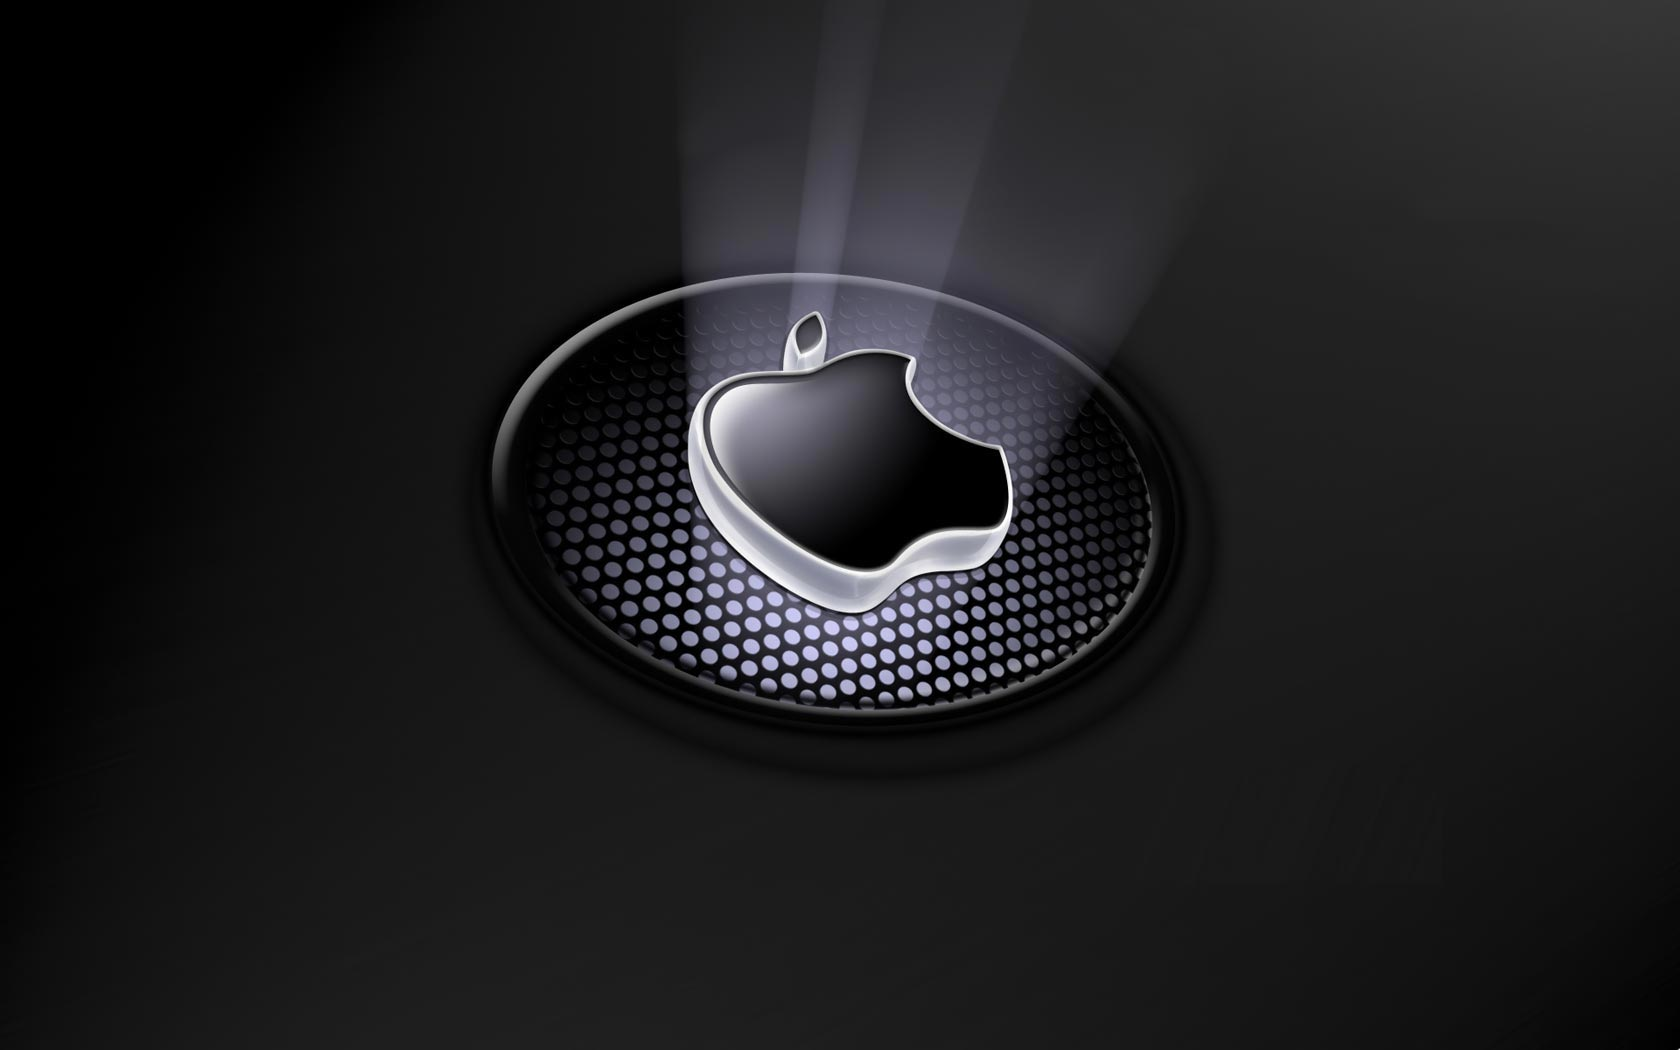 cool apple logos hd. apple logo wallpapers hd a51 cool logos hd o